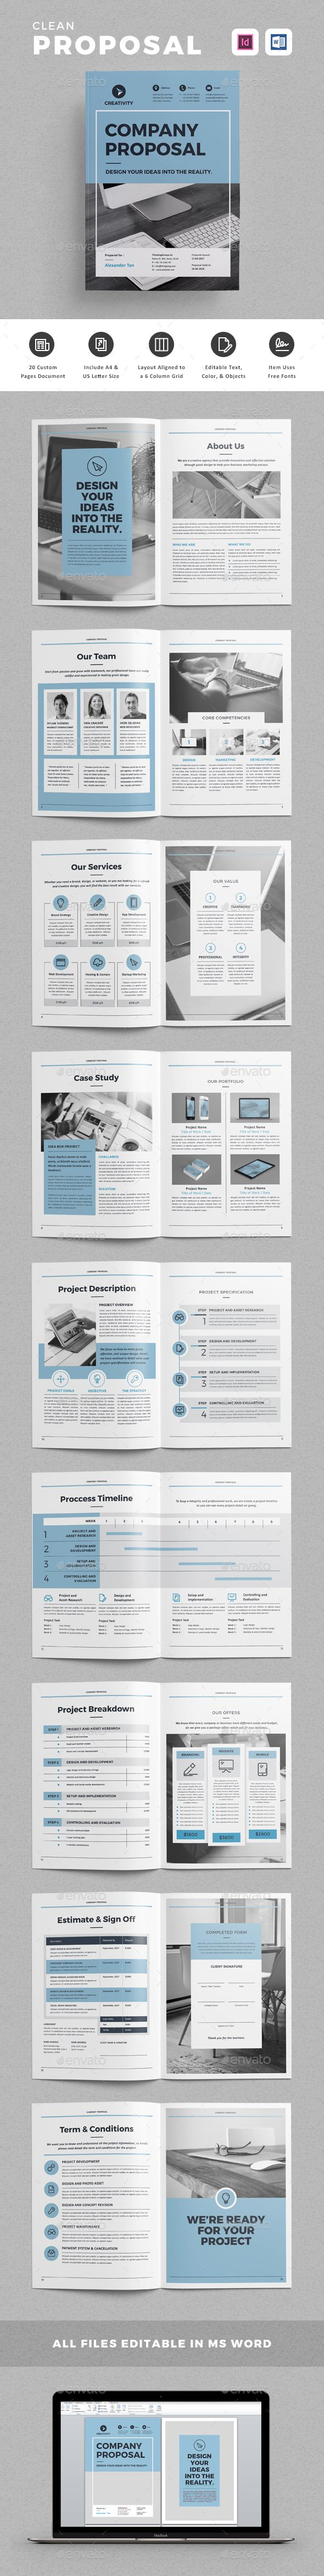 Proposal — InDesign INDD #project #presentation • Download ➝ https://graphicriver.net/item/proposal/19782506?ref=pxcr